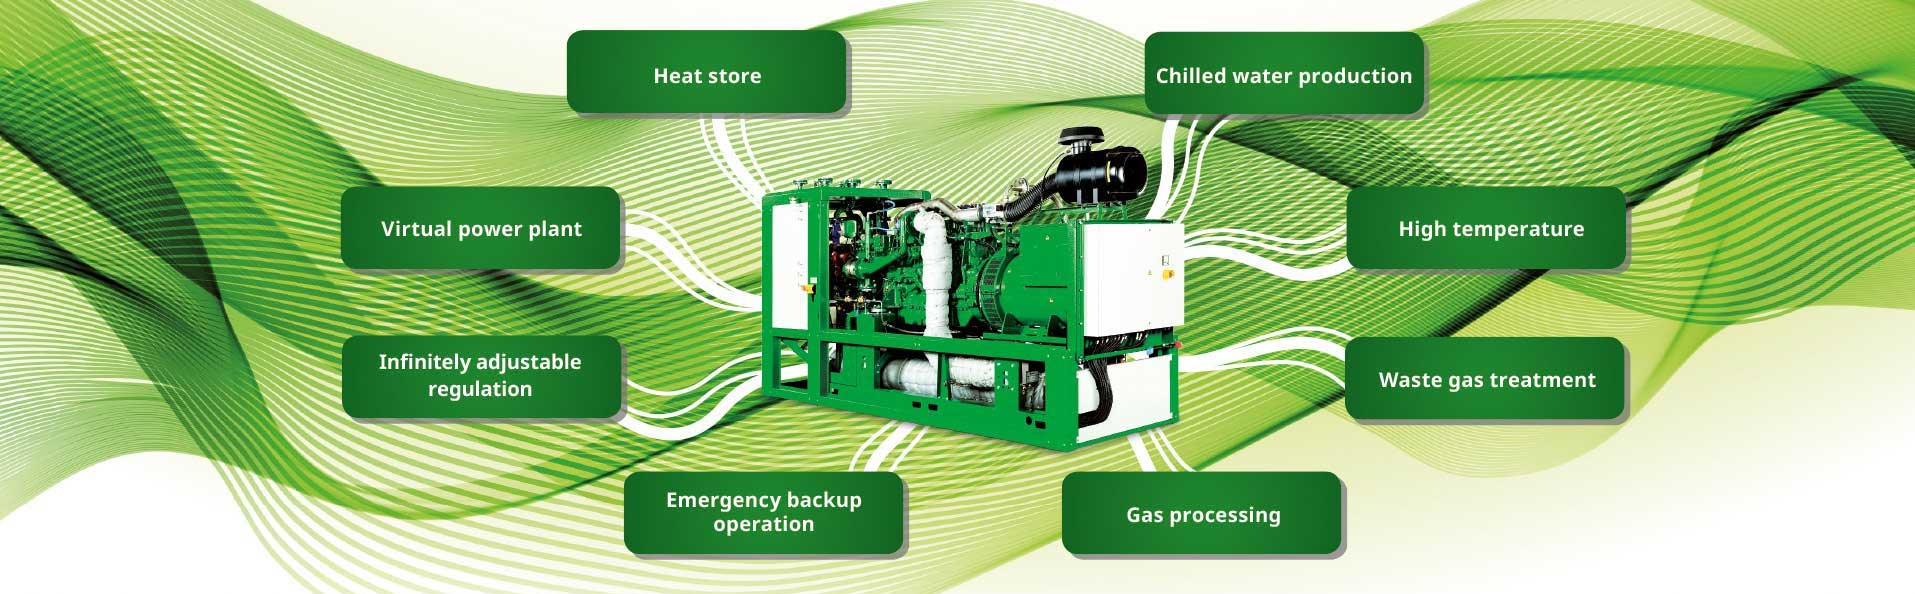 CHP-solutions